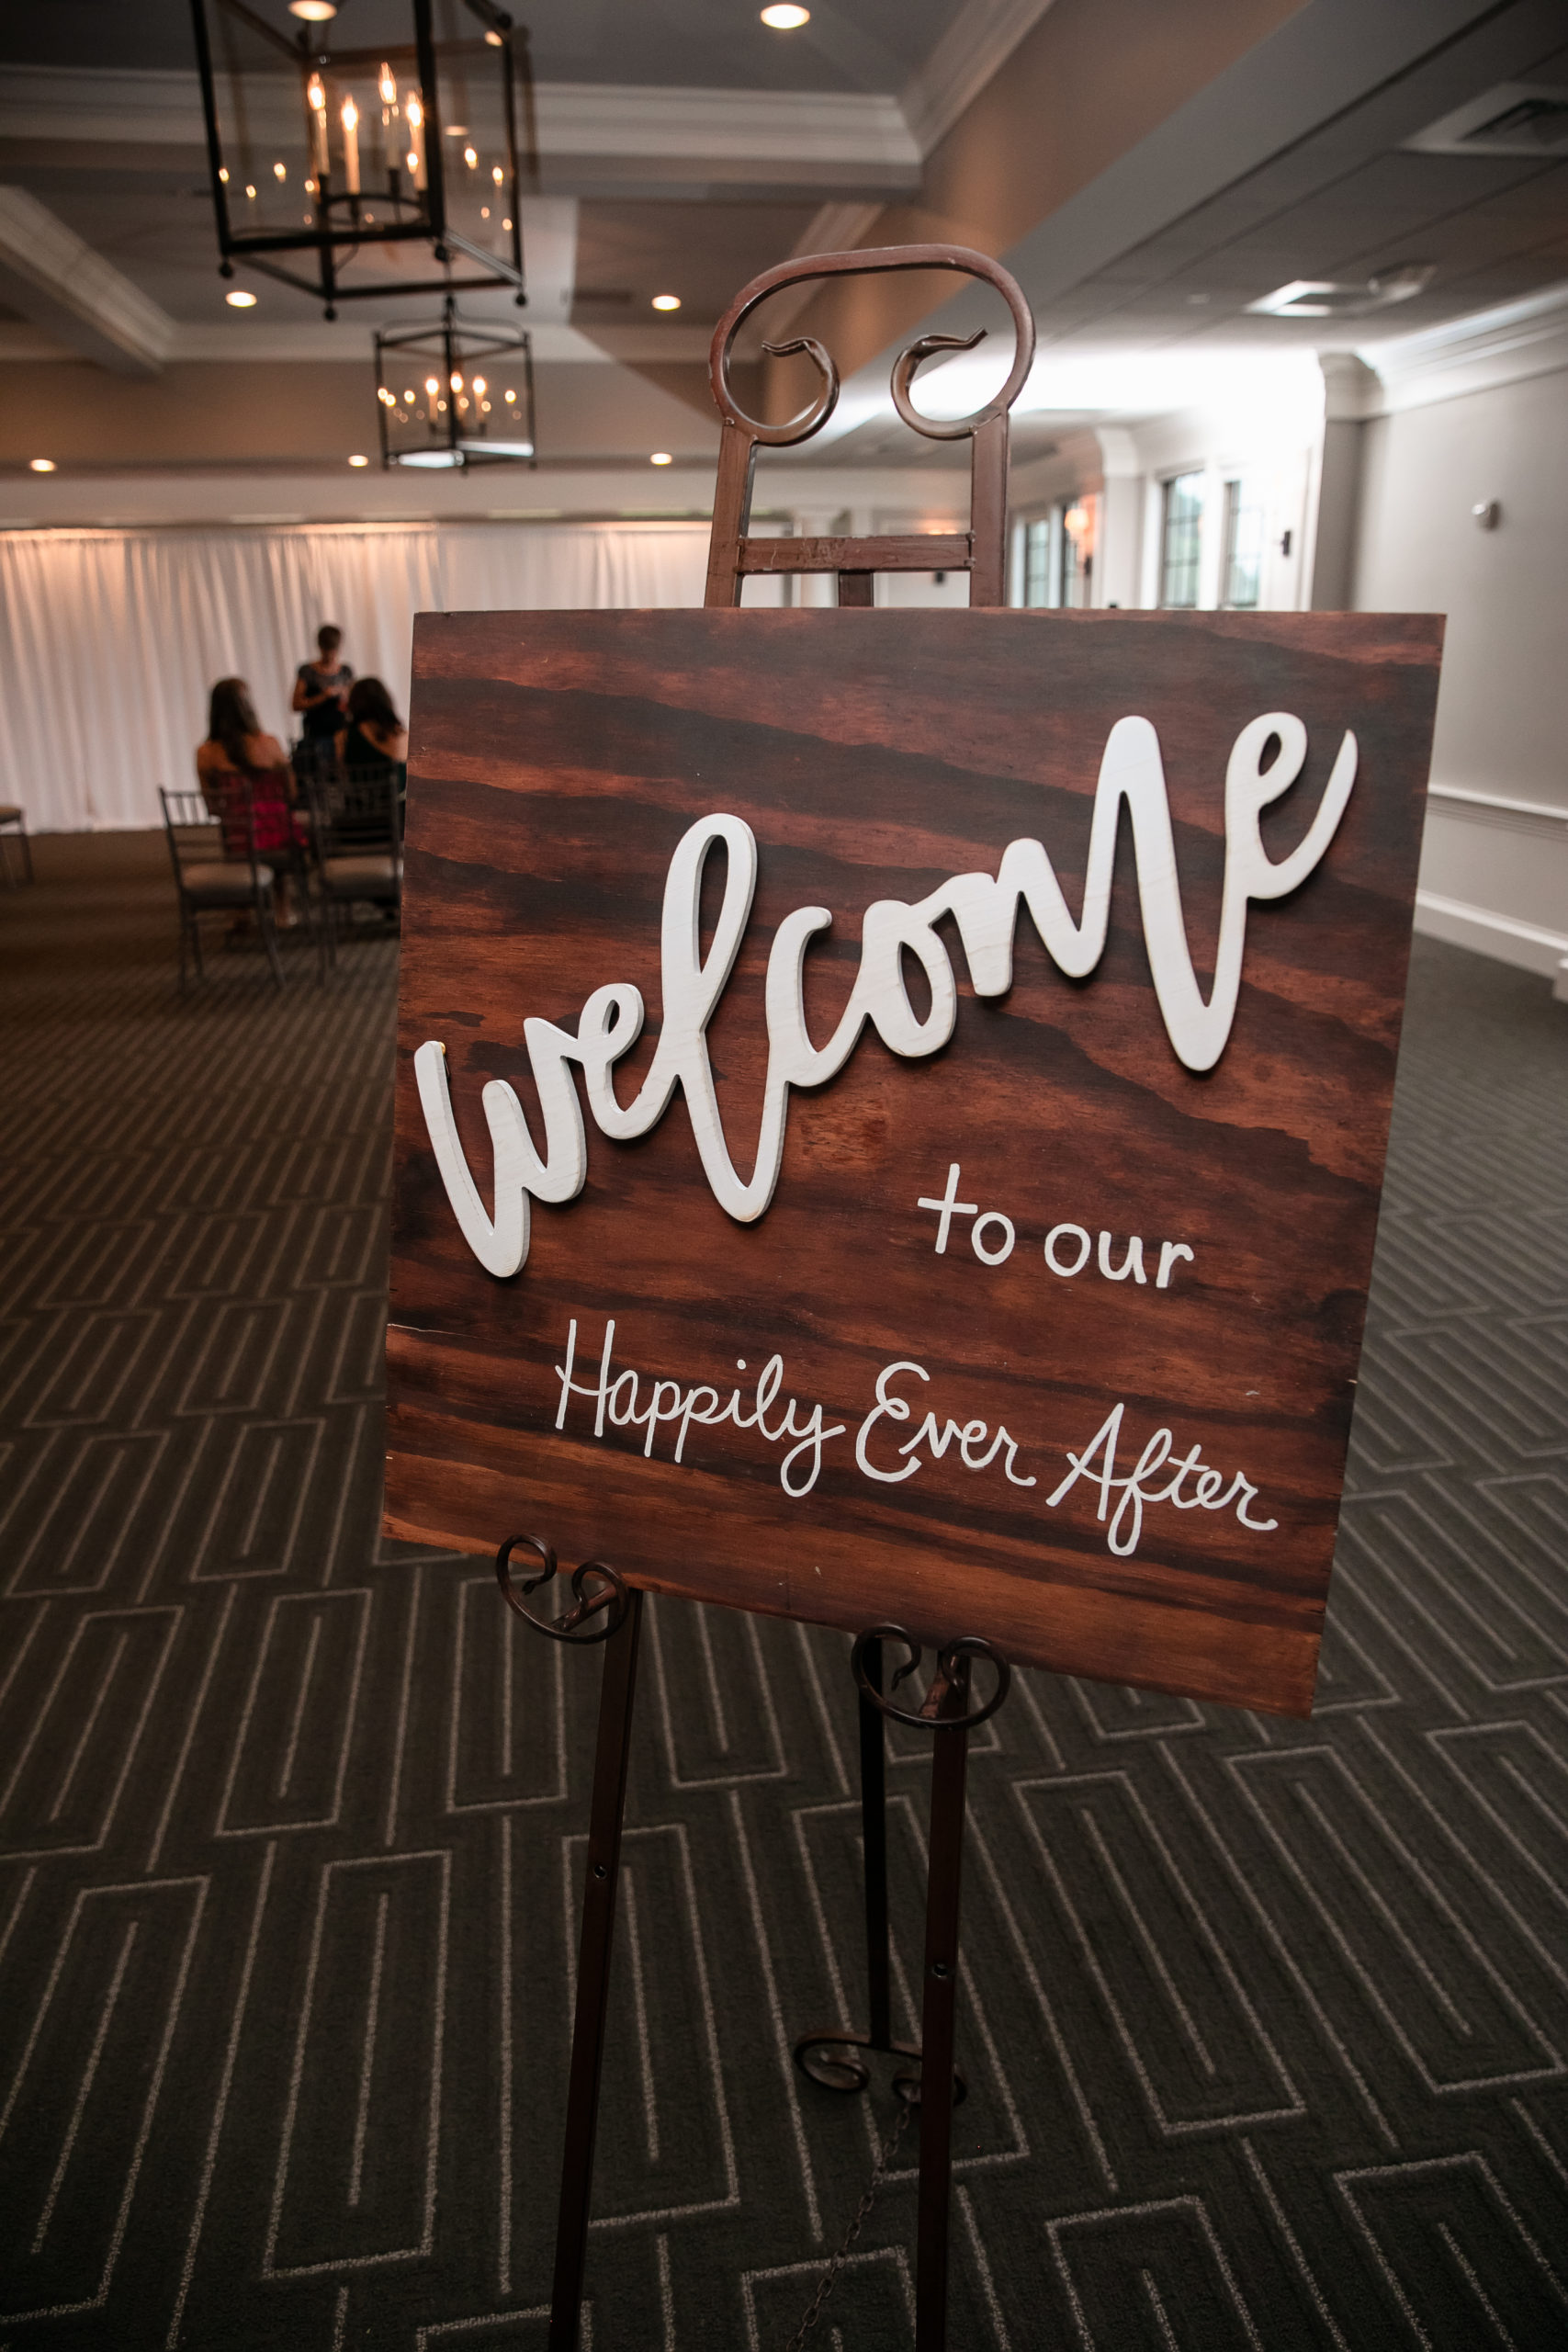 Welcome, sign, Happily ever after, Tracy Jenkins Photography, Harbor Lights, Warwick, Rhode Island, RI, New England, Wedding, Photography